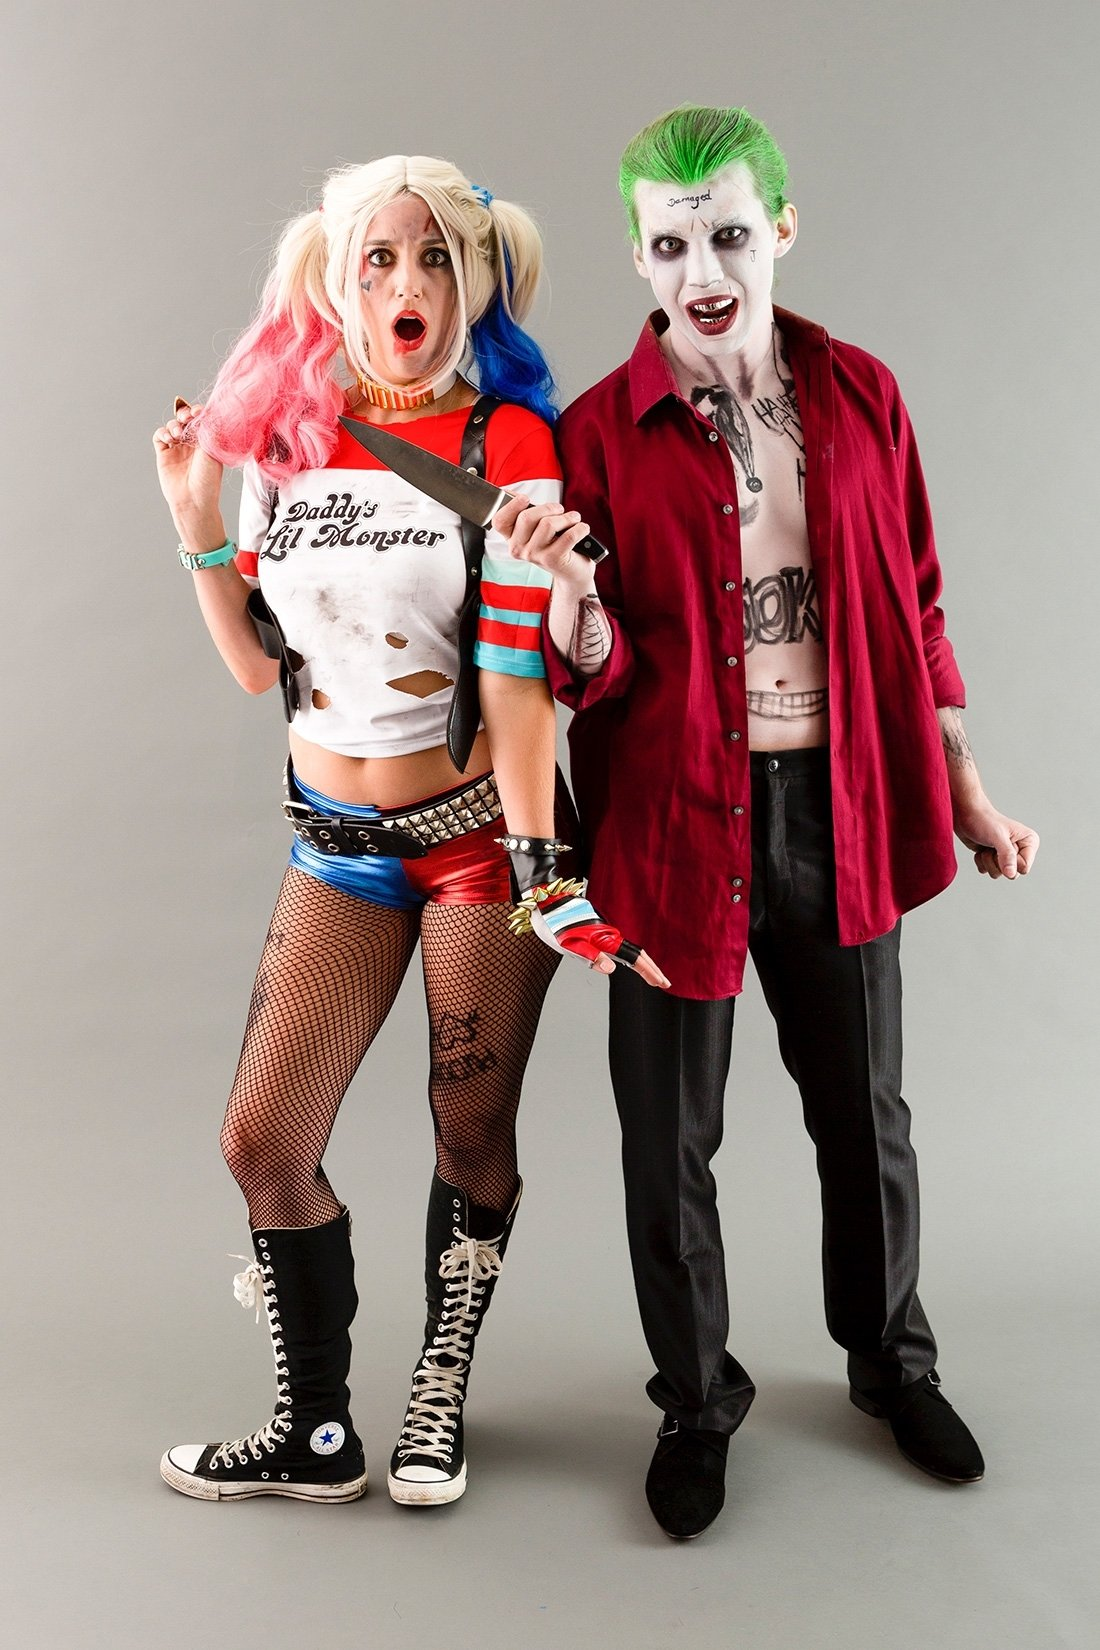 10 Stylish Cute Couple Halloween Costumes Ideas cute couple halloween costumes ideas extraordinary ken and barbie  sc 1 st  Unique Ideas 2018 & 10 Stylish Cute Couple Halloween Costumes Ideas